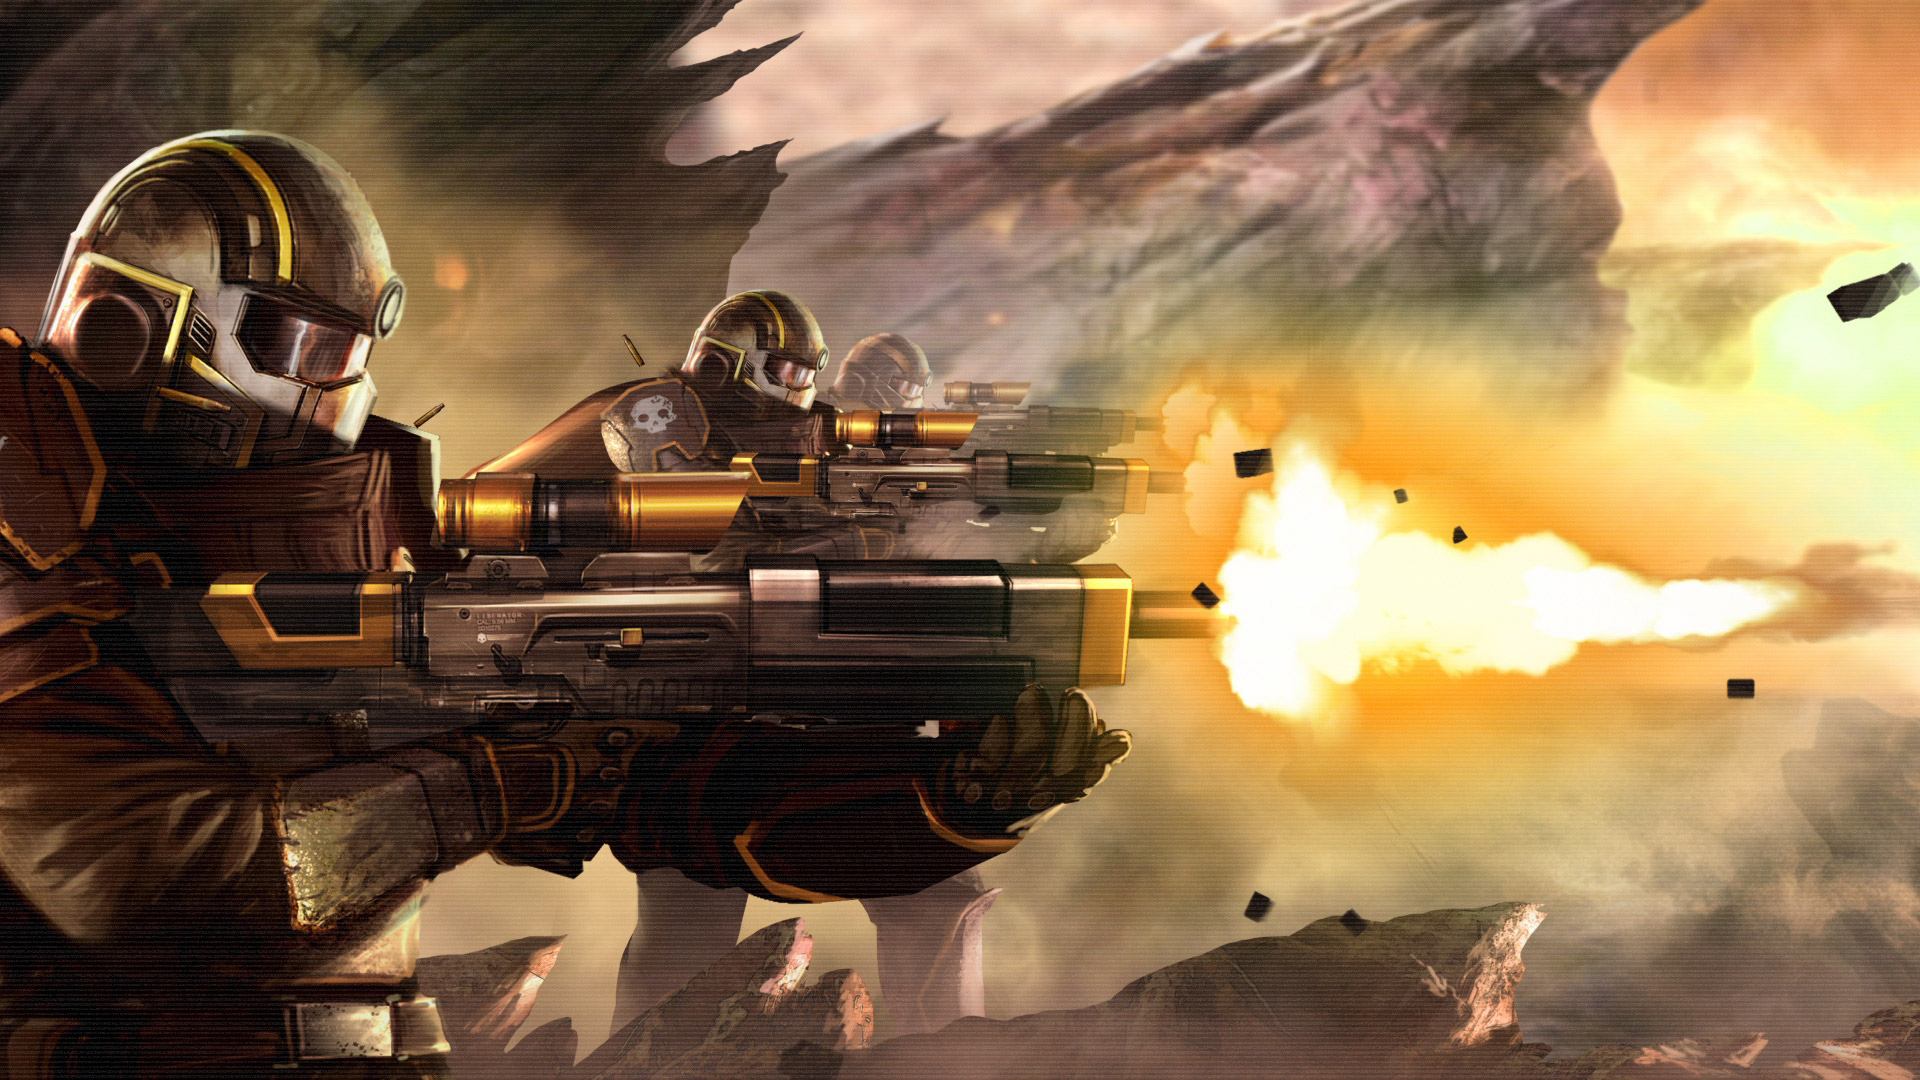 Free Helldivers Wallpaper in 1920x1080